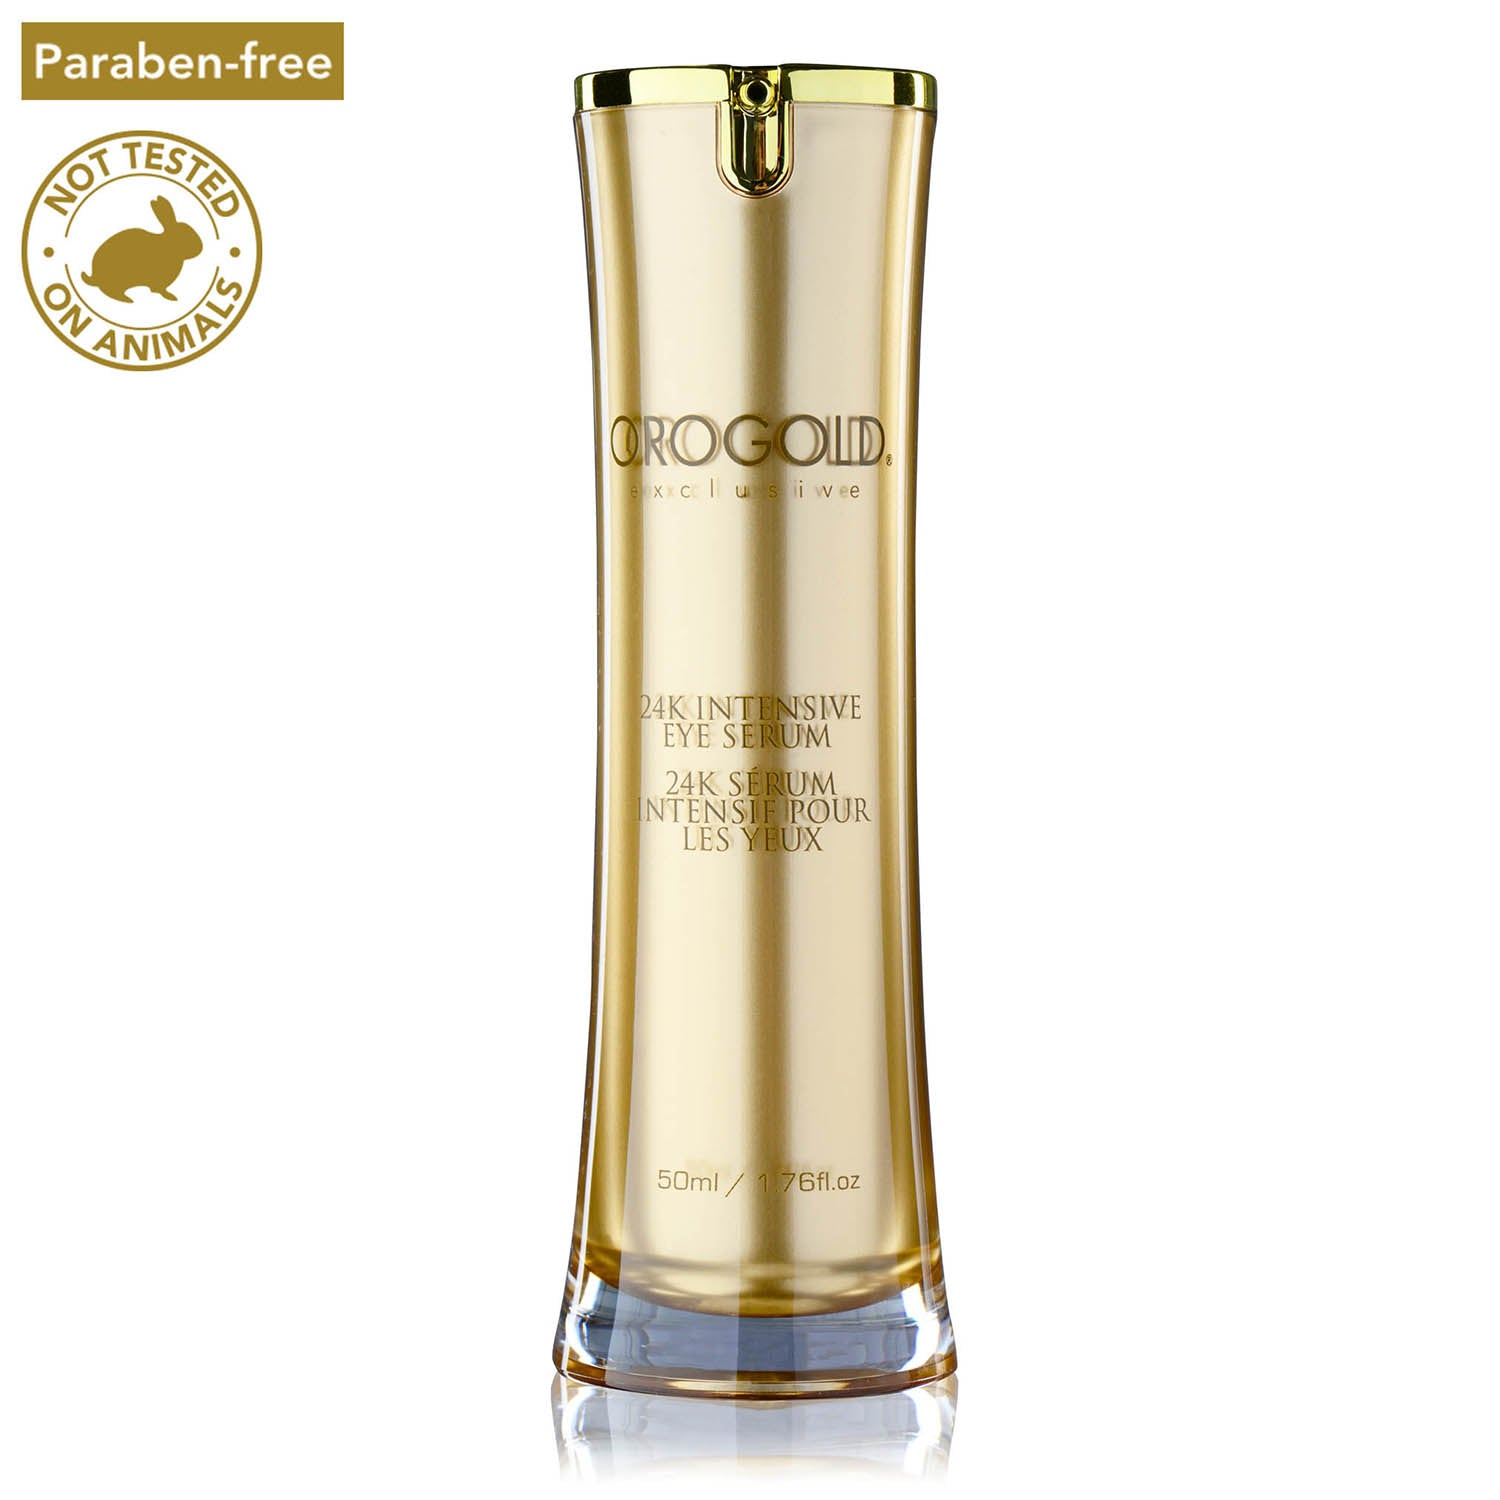 orogold under eye wrinkle cream